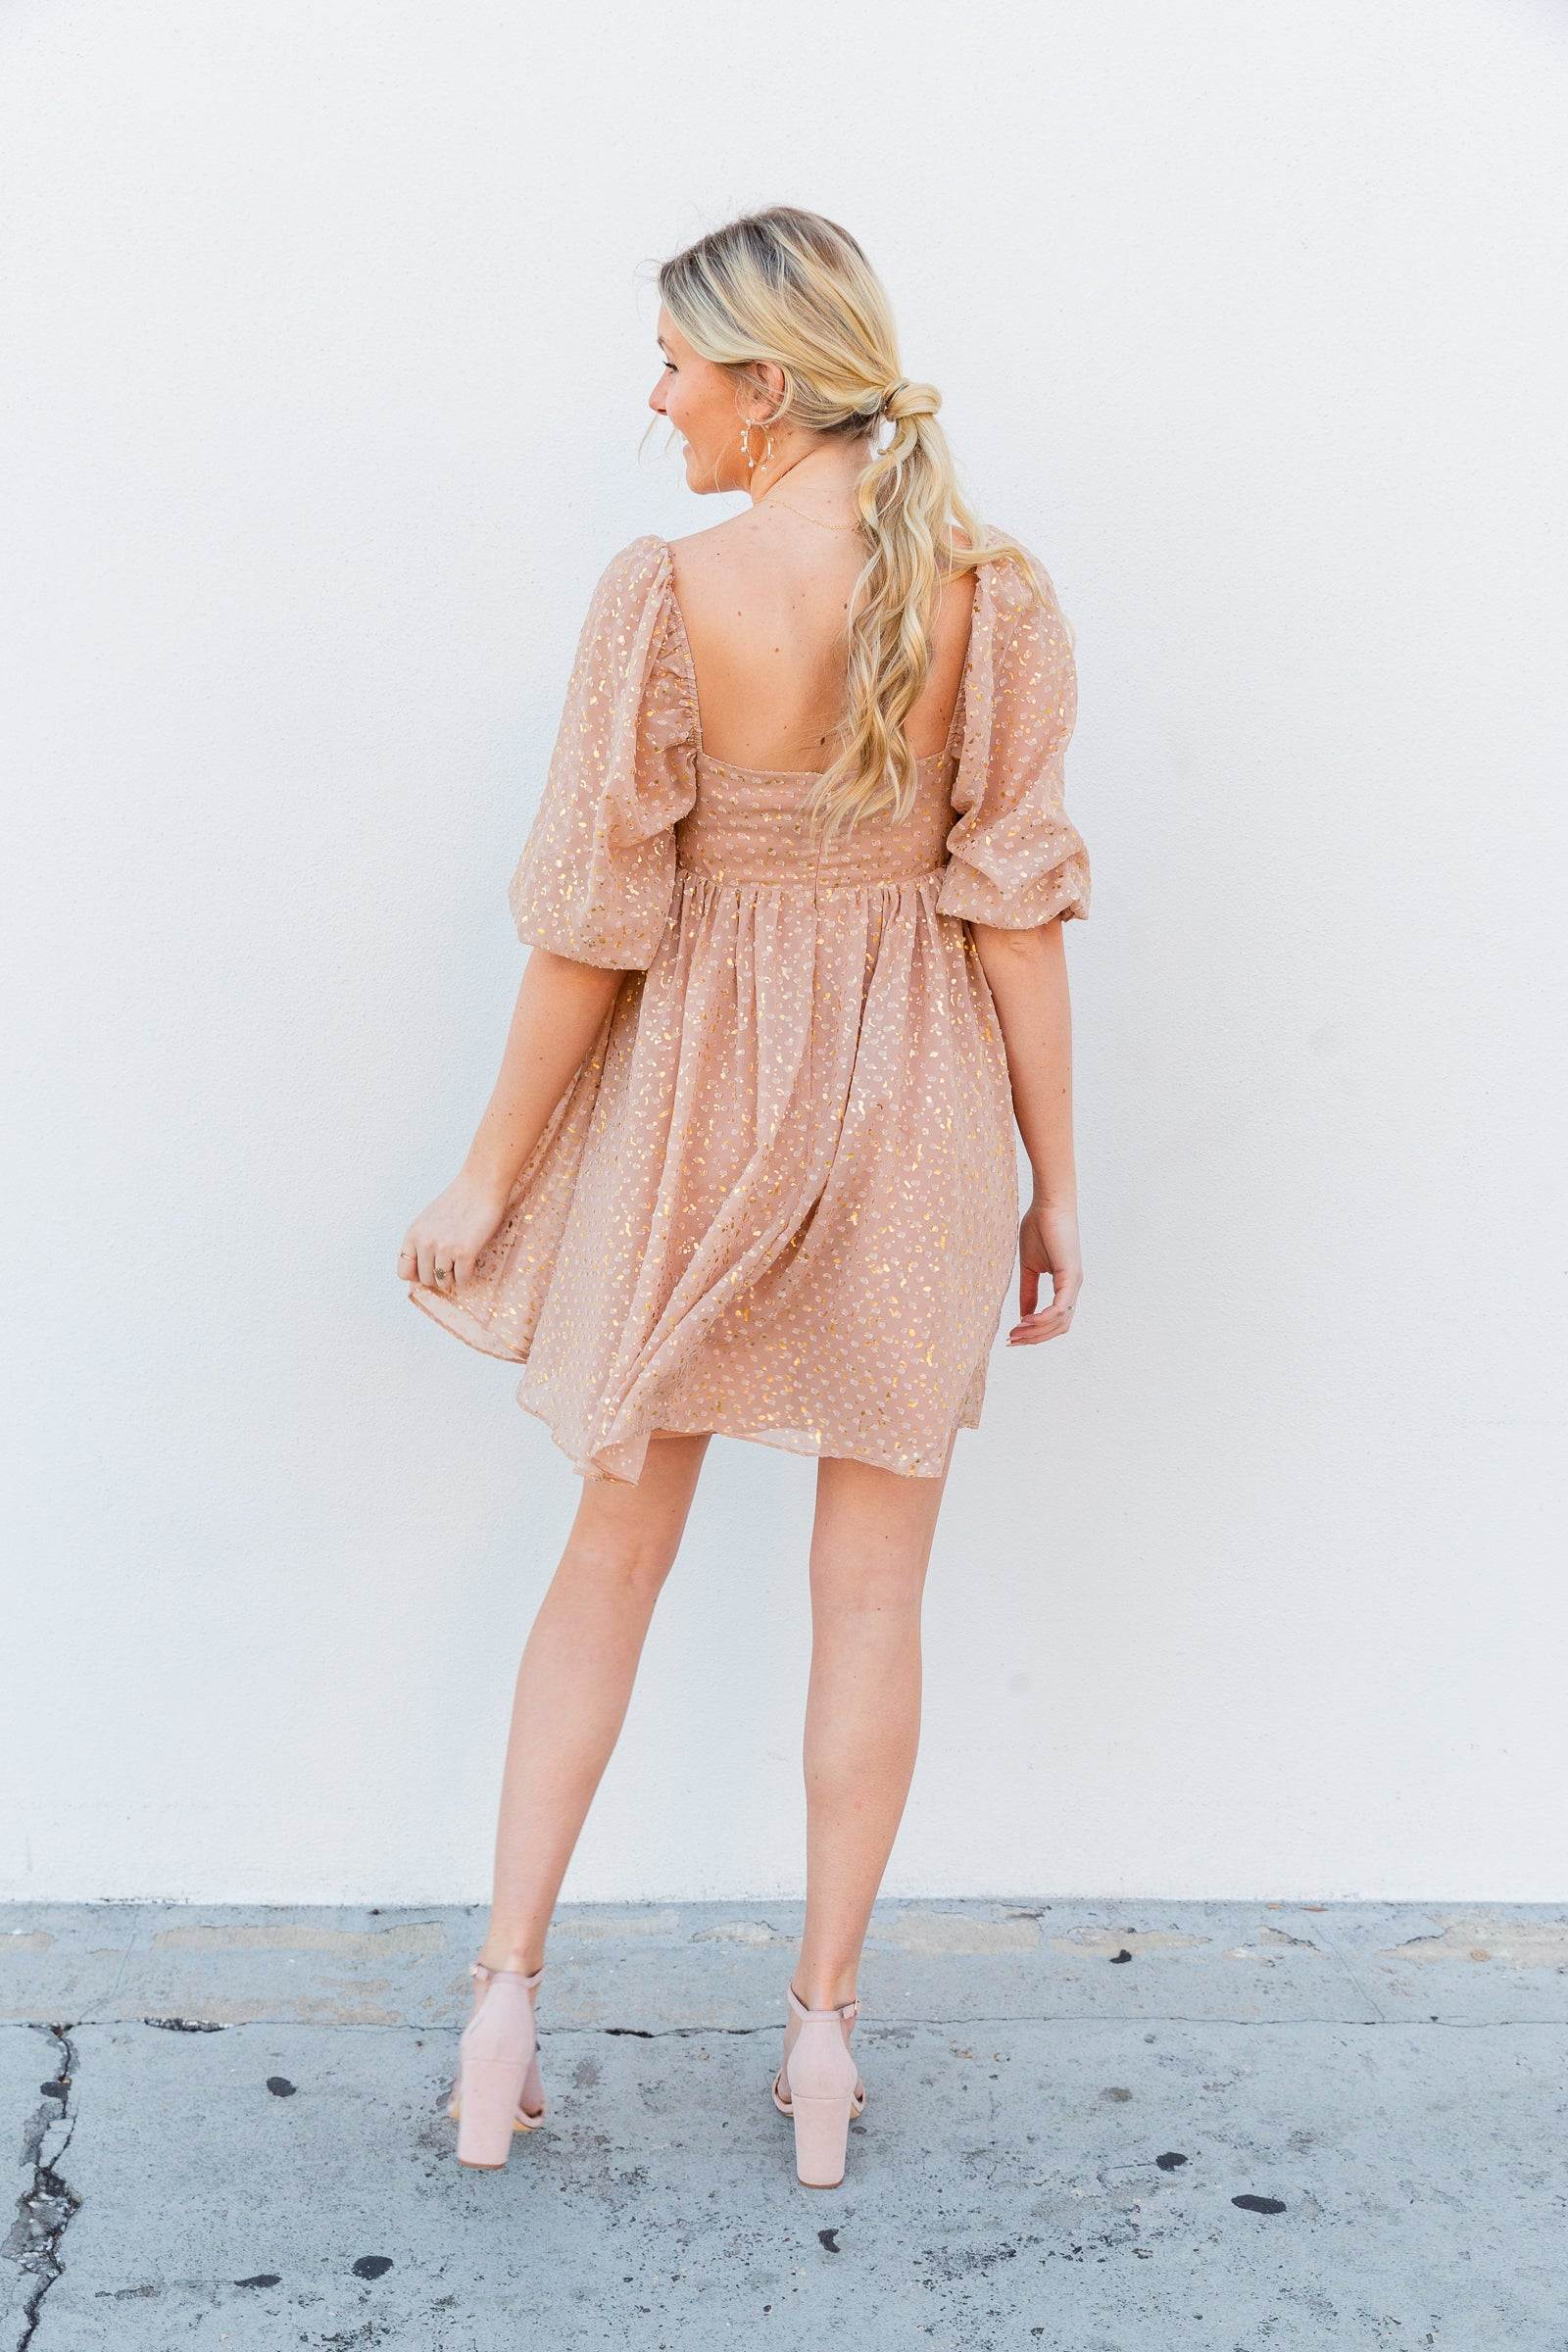 Gold prints cover the flowy fabric of this dress. Mid-length puff sleeves attach to a square neckline on a darted top that flows into an oversized babydoll shift dress silhouette.